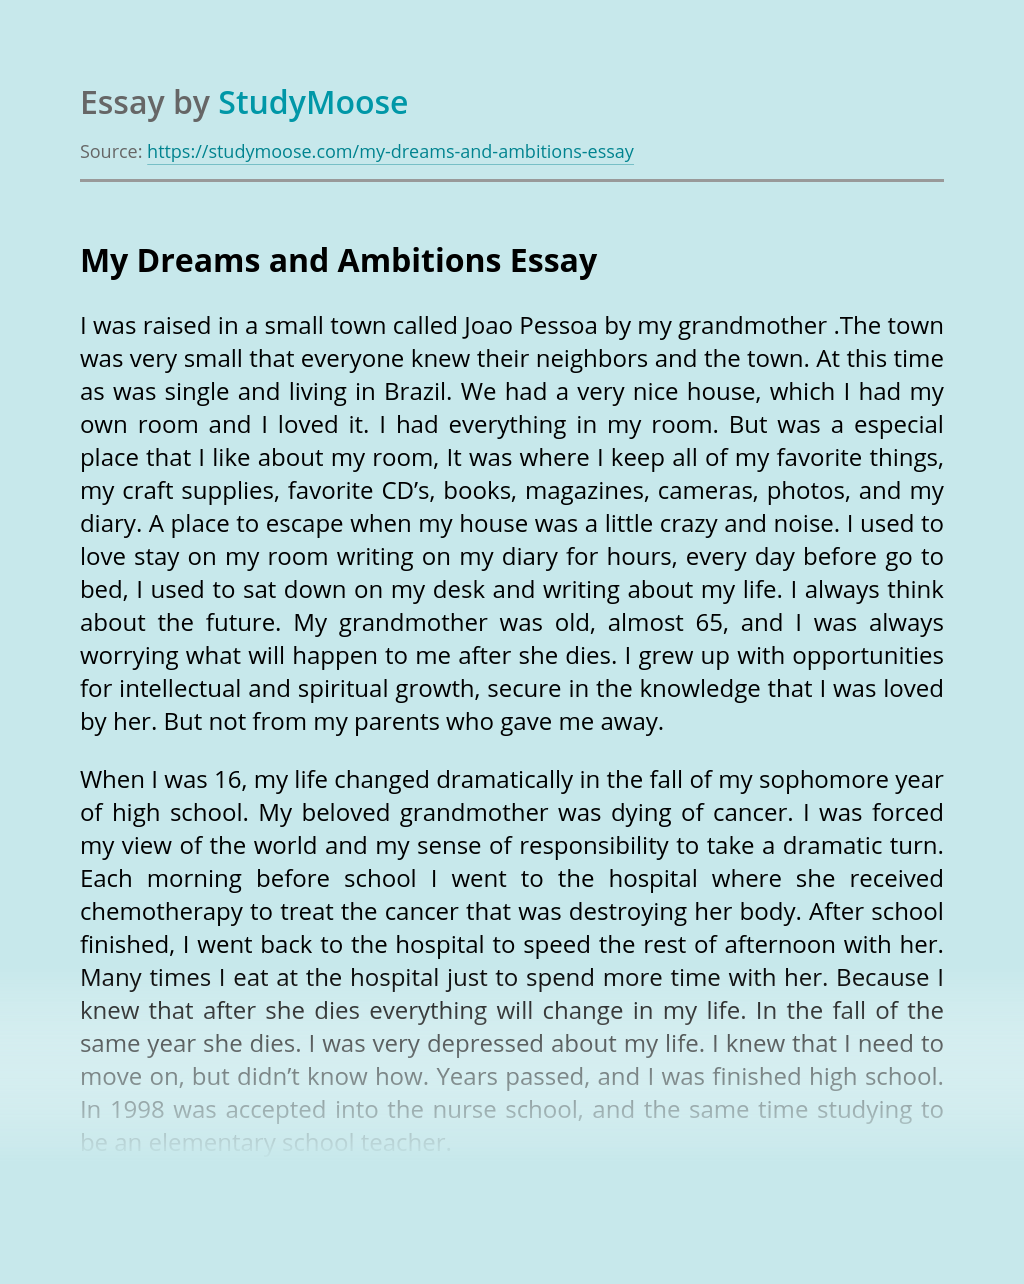 My Dreams and Ambitions